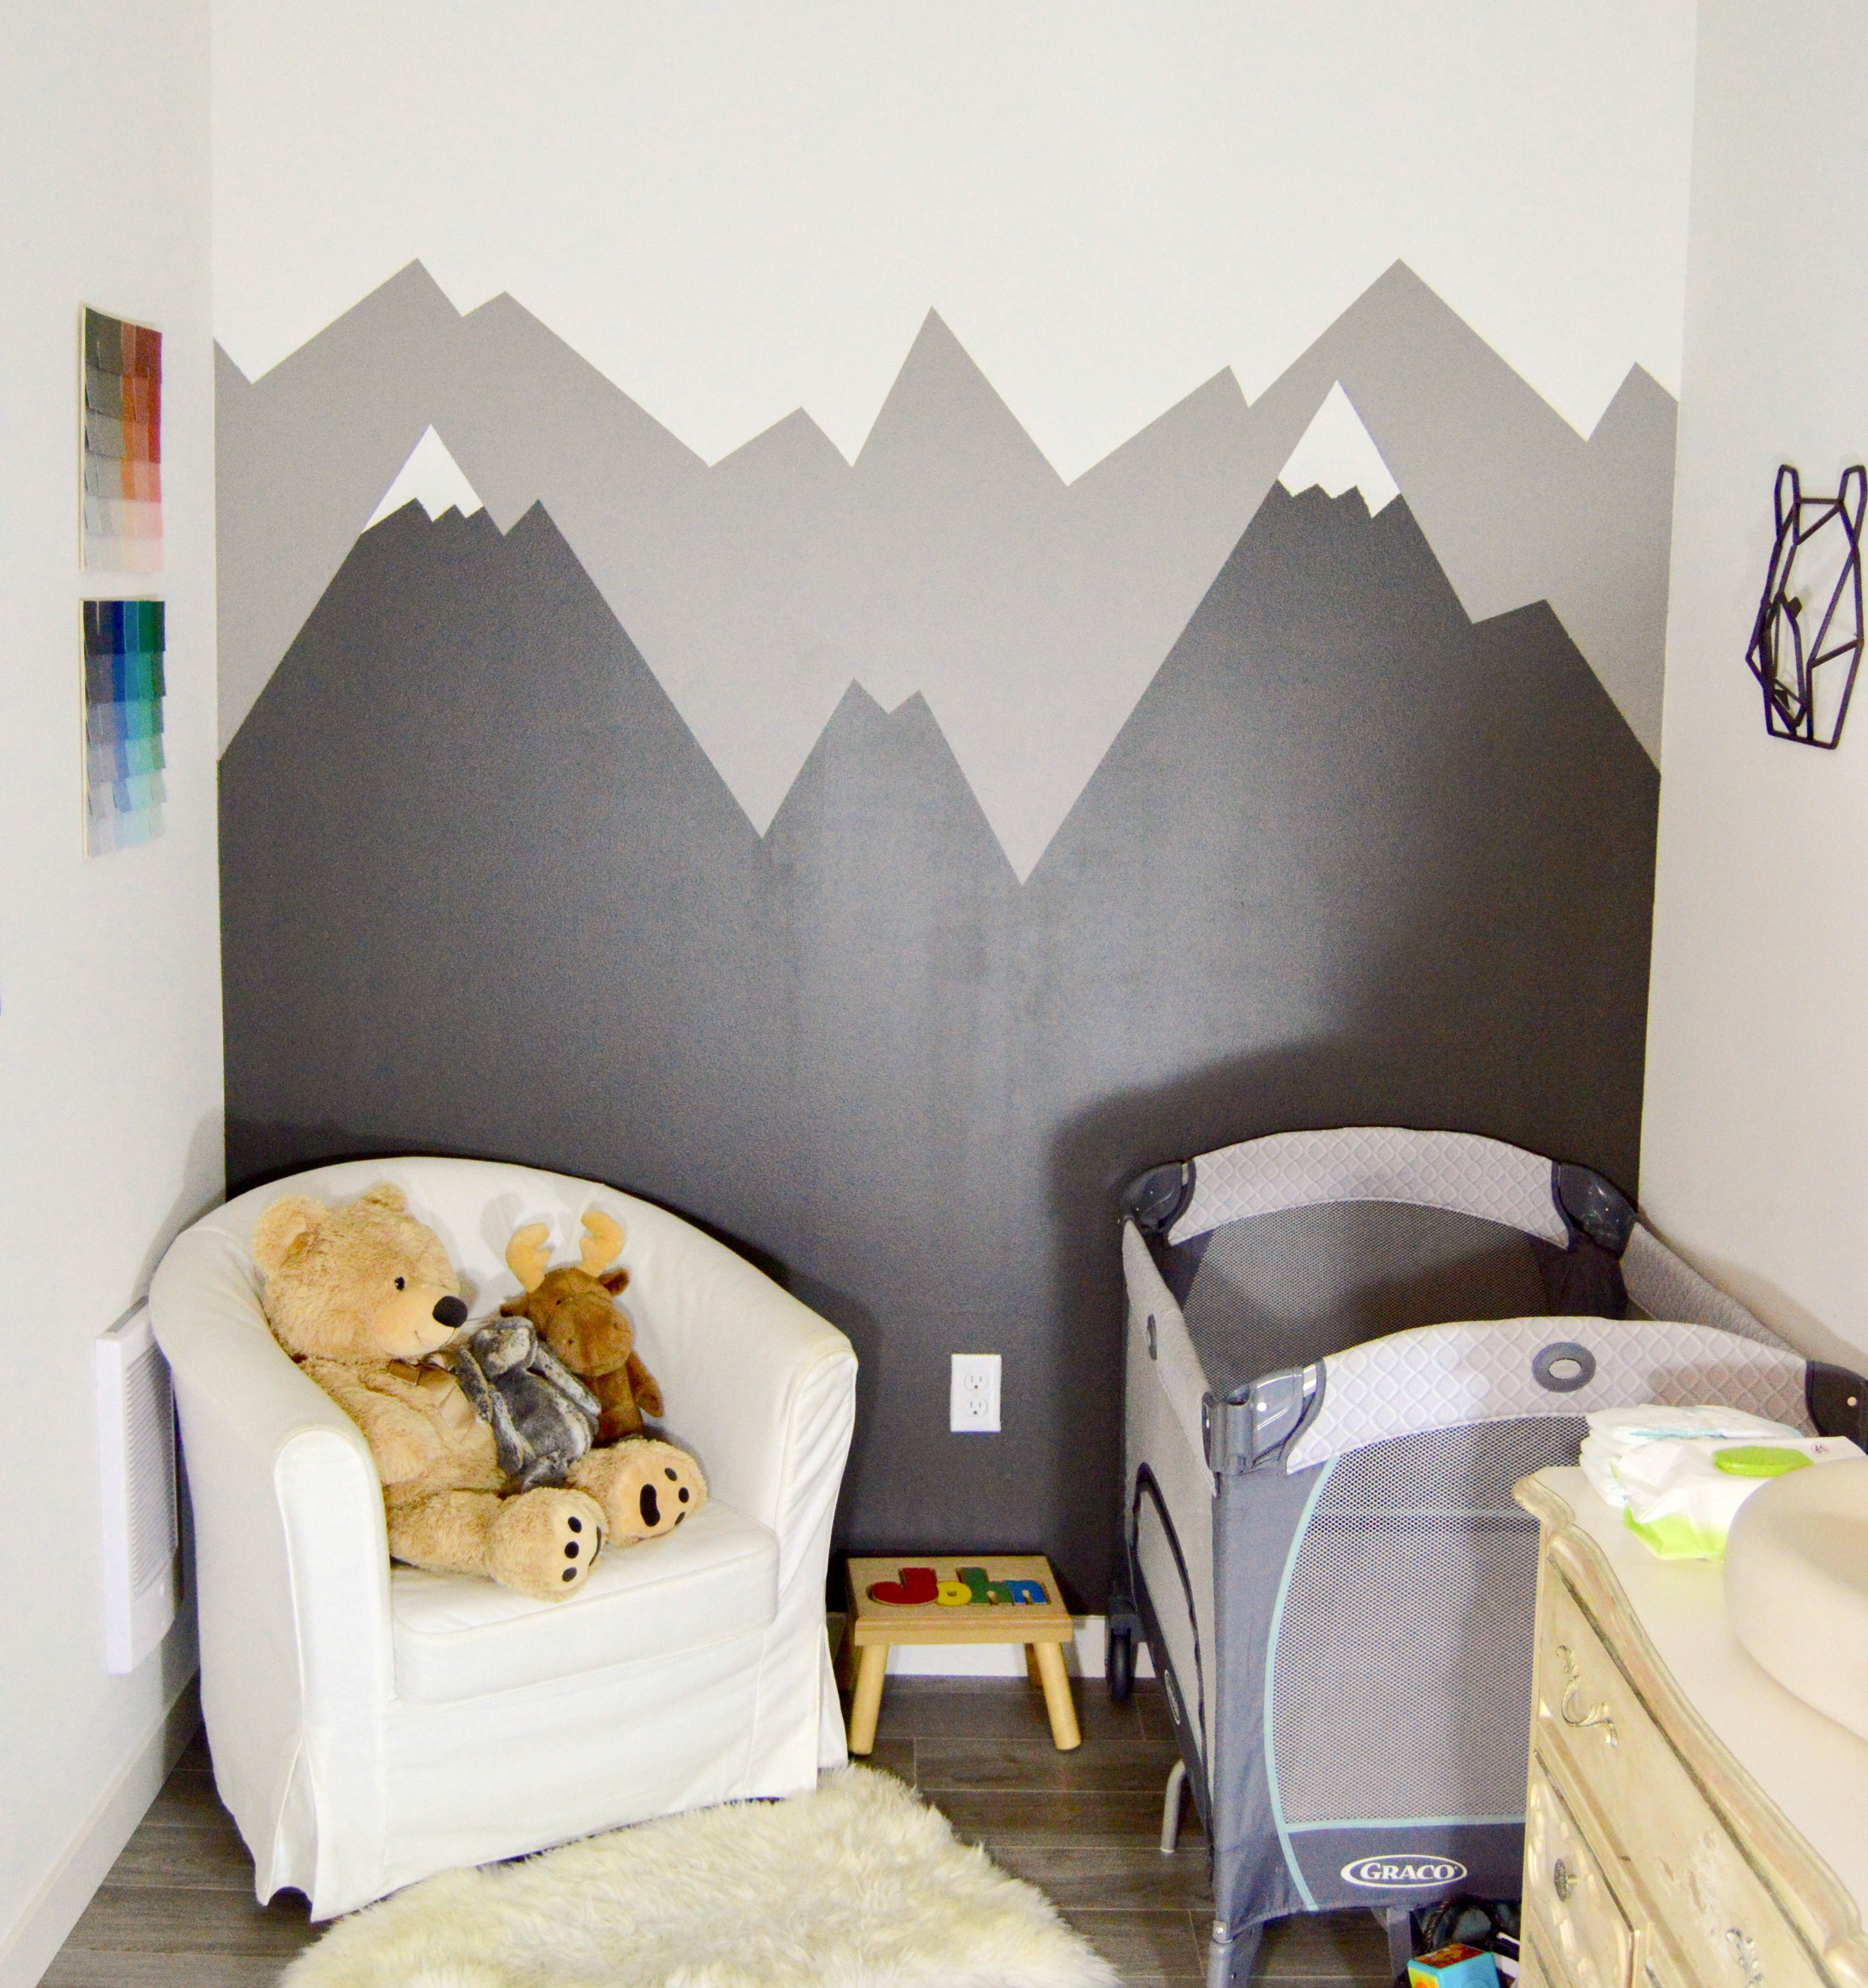 Mountain Mural Tutorial - Easy and quick step by step DIY mountain mural tutorial for how to paint a mountain mural on a budget. Cute nursery wall idea for a mountain themed room.